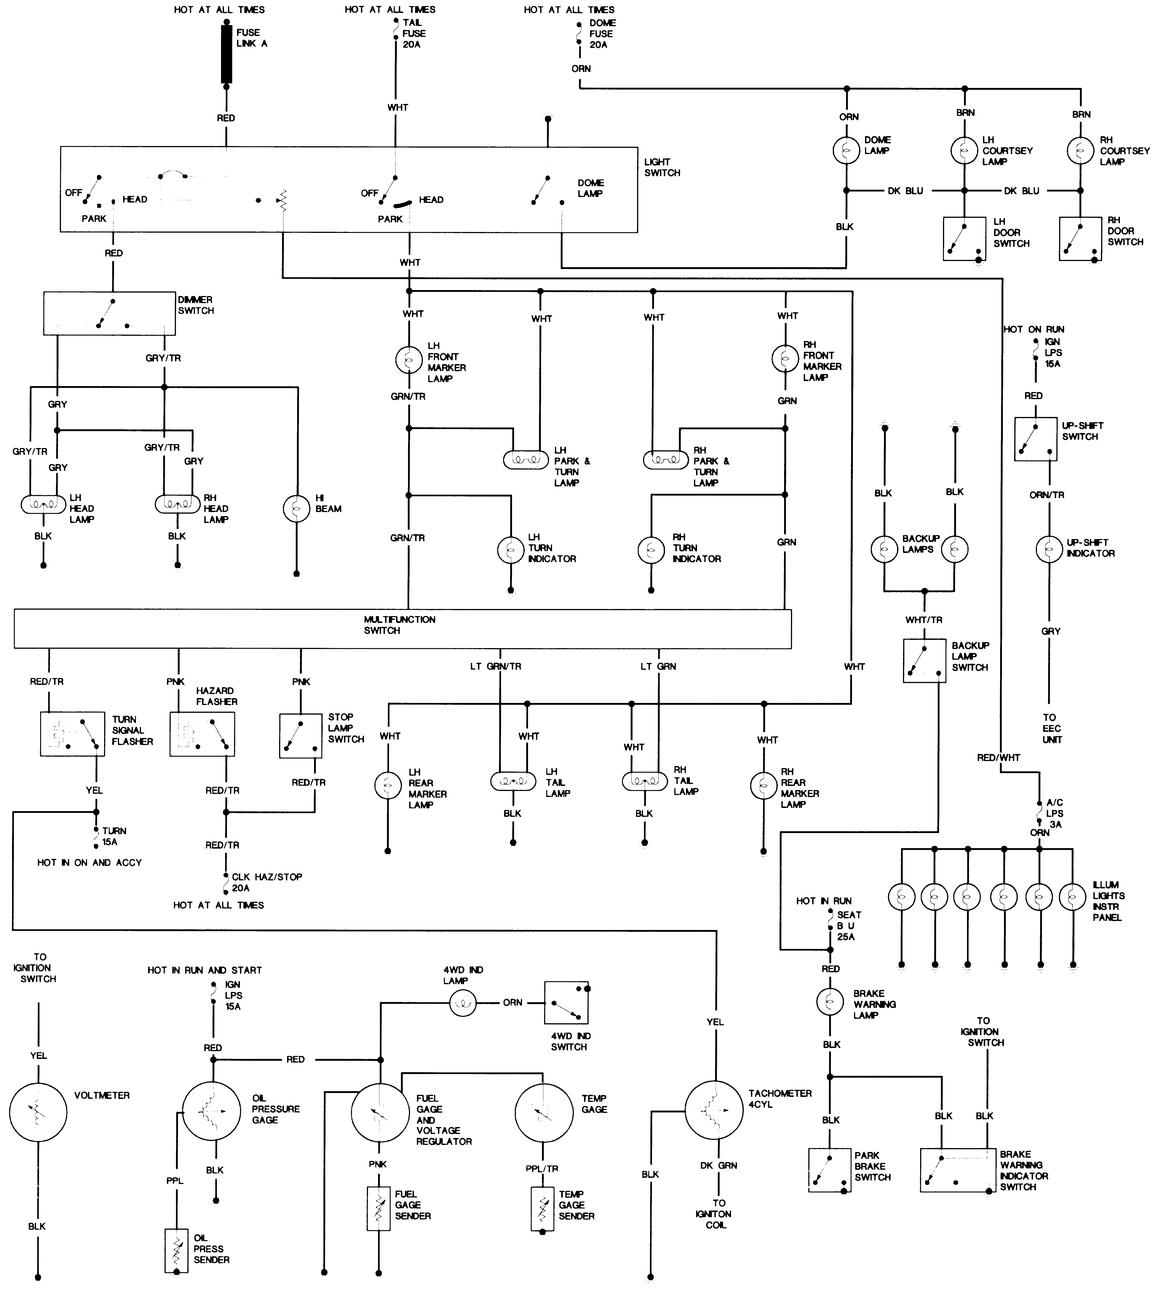 1985 Jeep Cj7 Wiring Diagram Will Be A Thing 1983 Cj Diagrams Chassis 2 Of Freeautomechanic For Clock